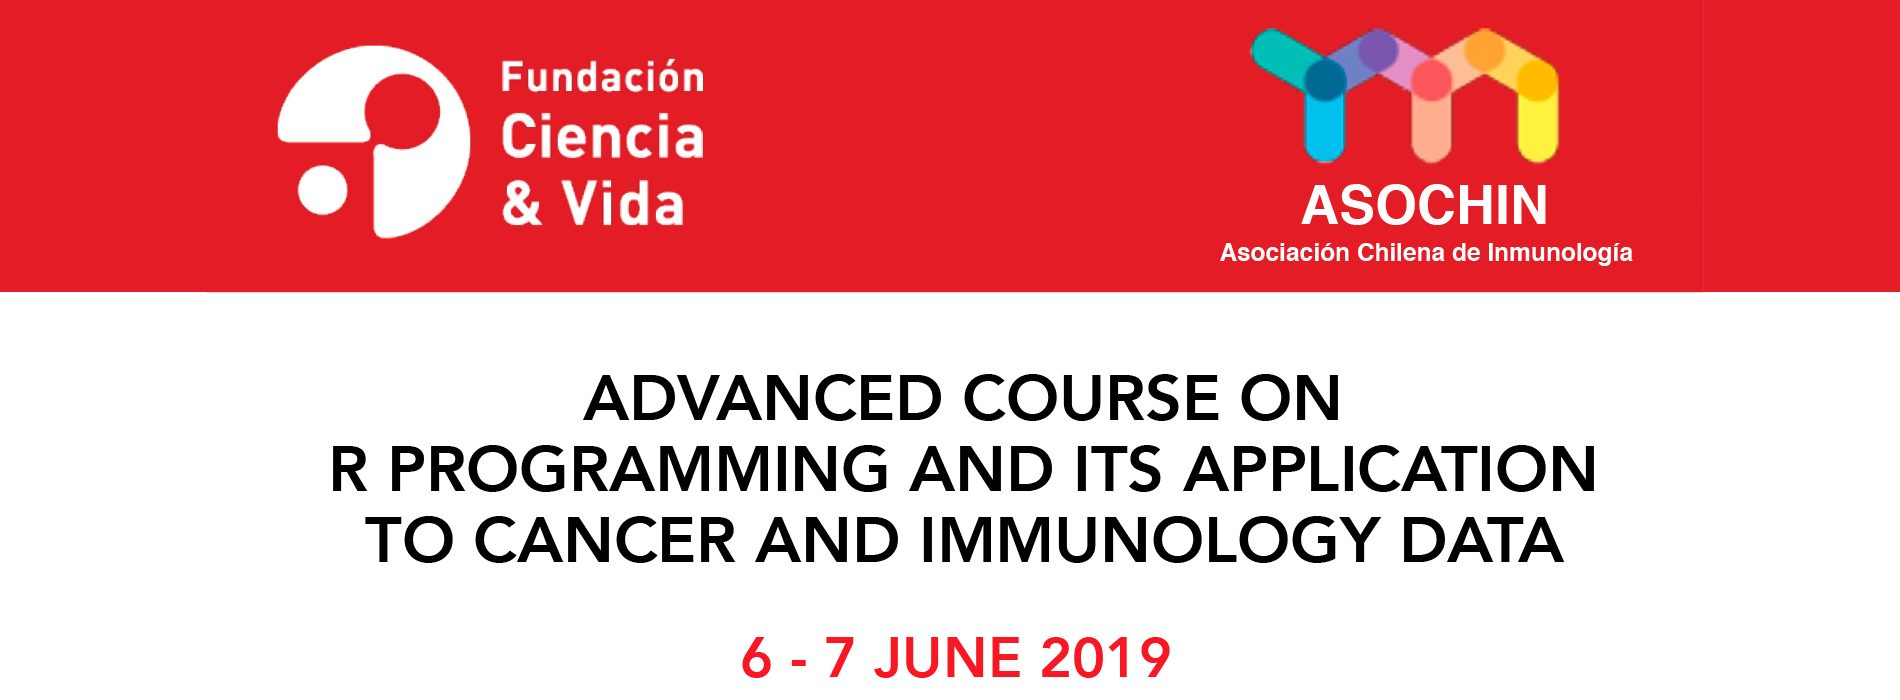 """Curso """"Advanced course on R programming and its application to cancer and immunology data"""""""